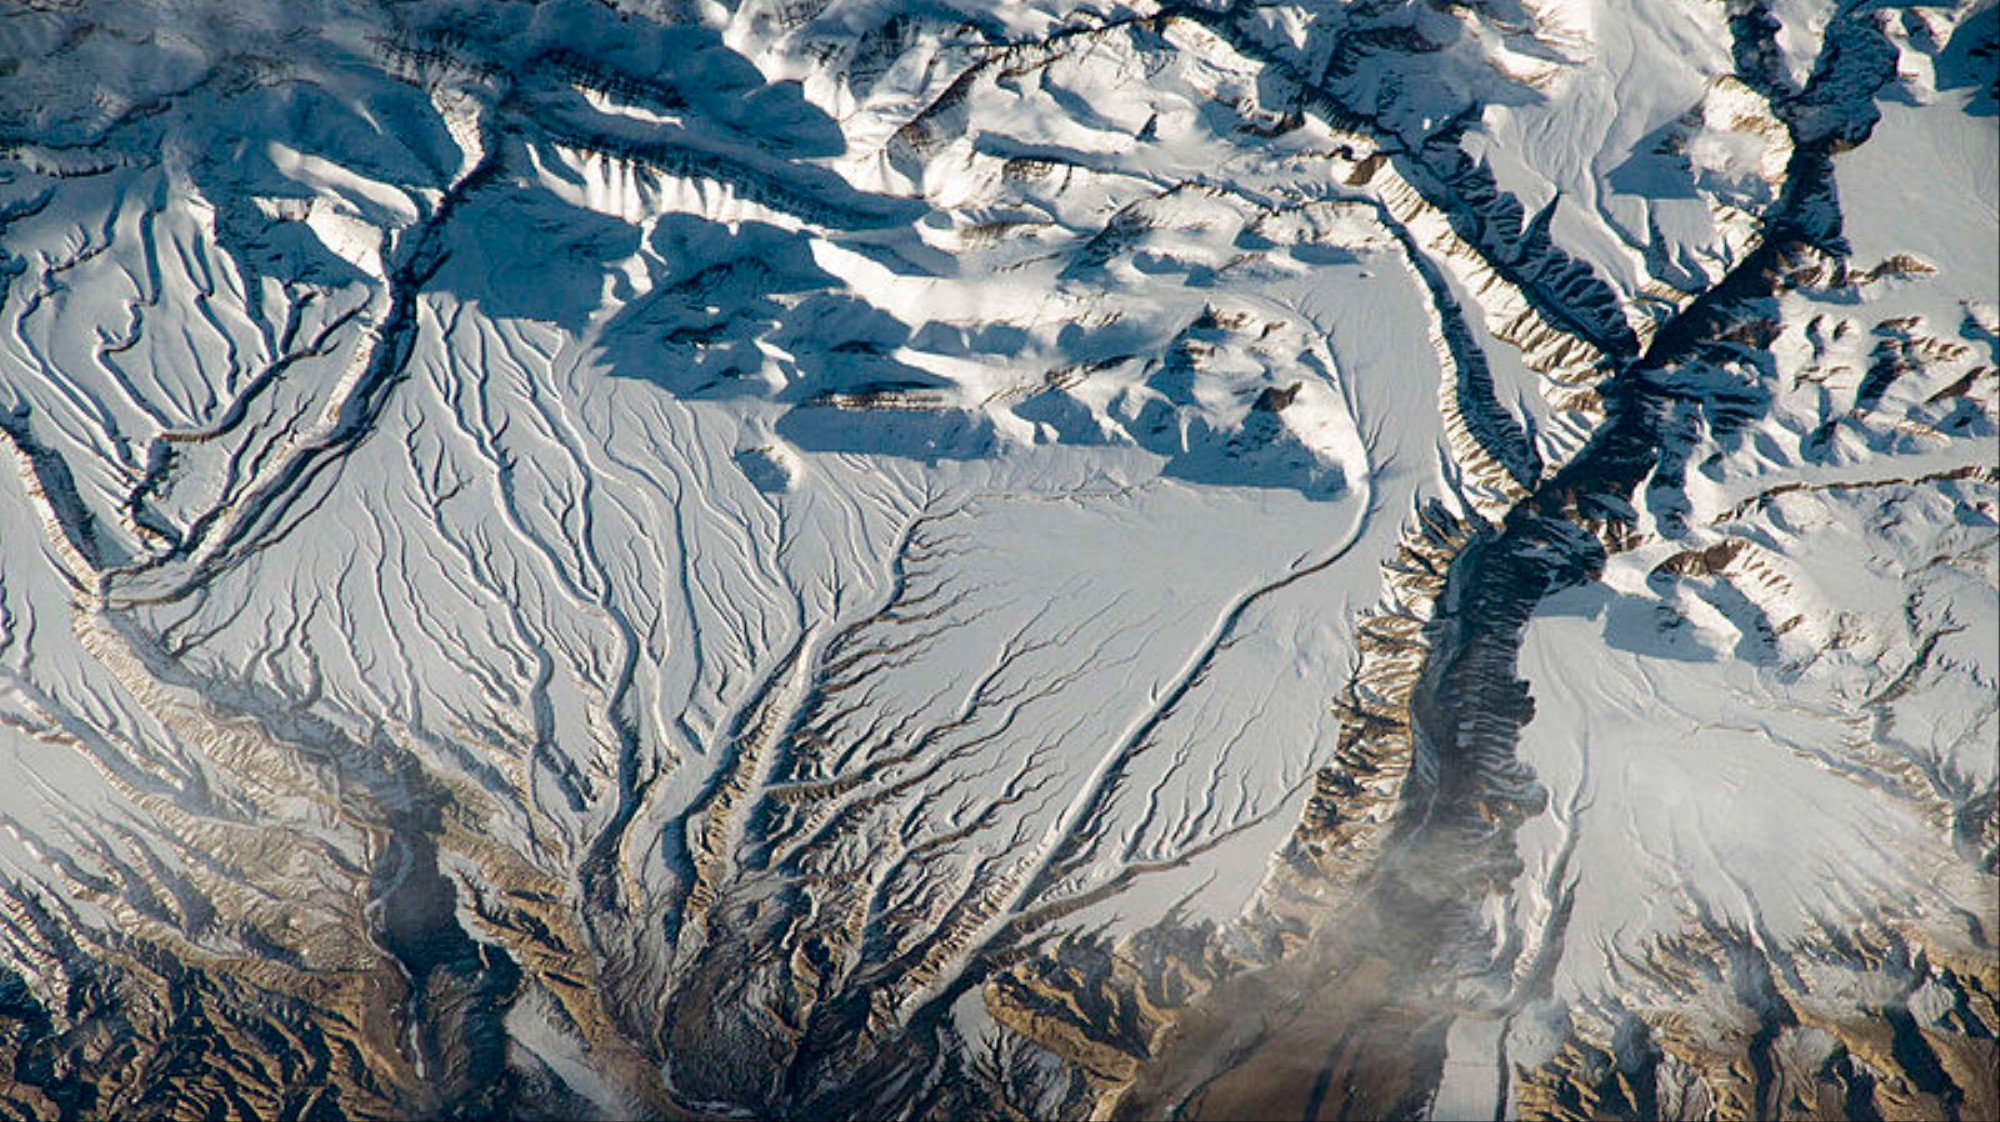 Climate Crisis' Will Claim One-Third of Himalayan Glaciers by 2100